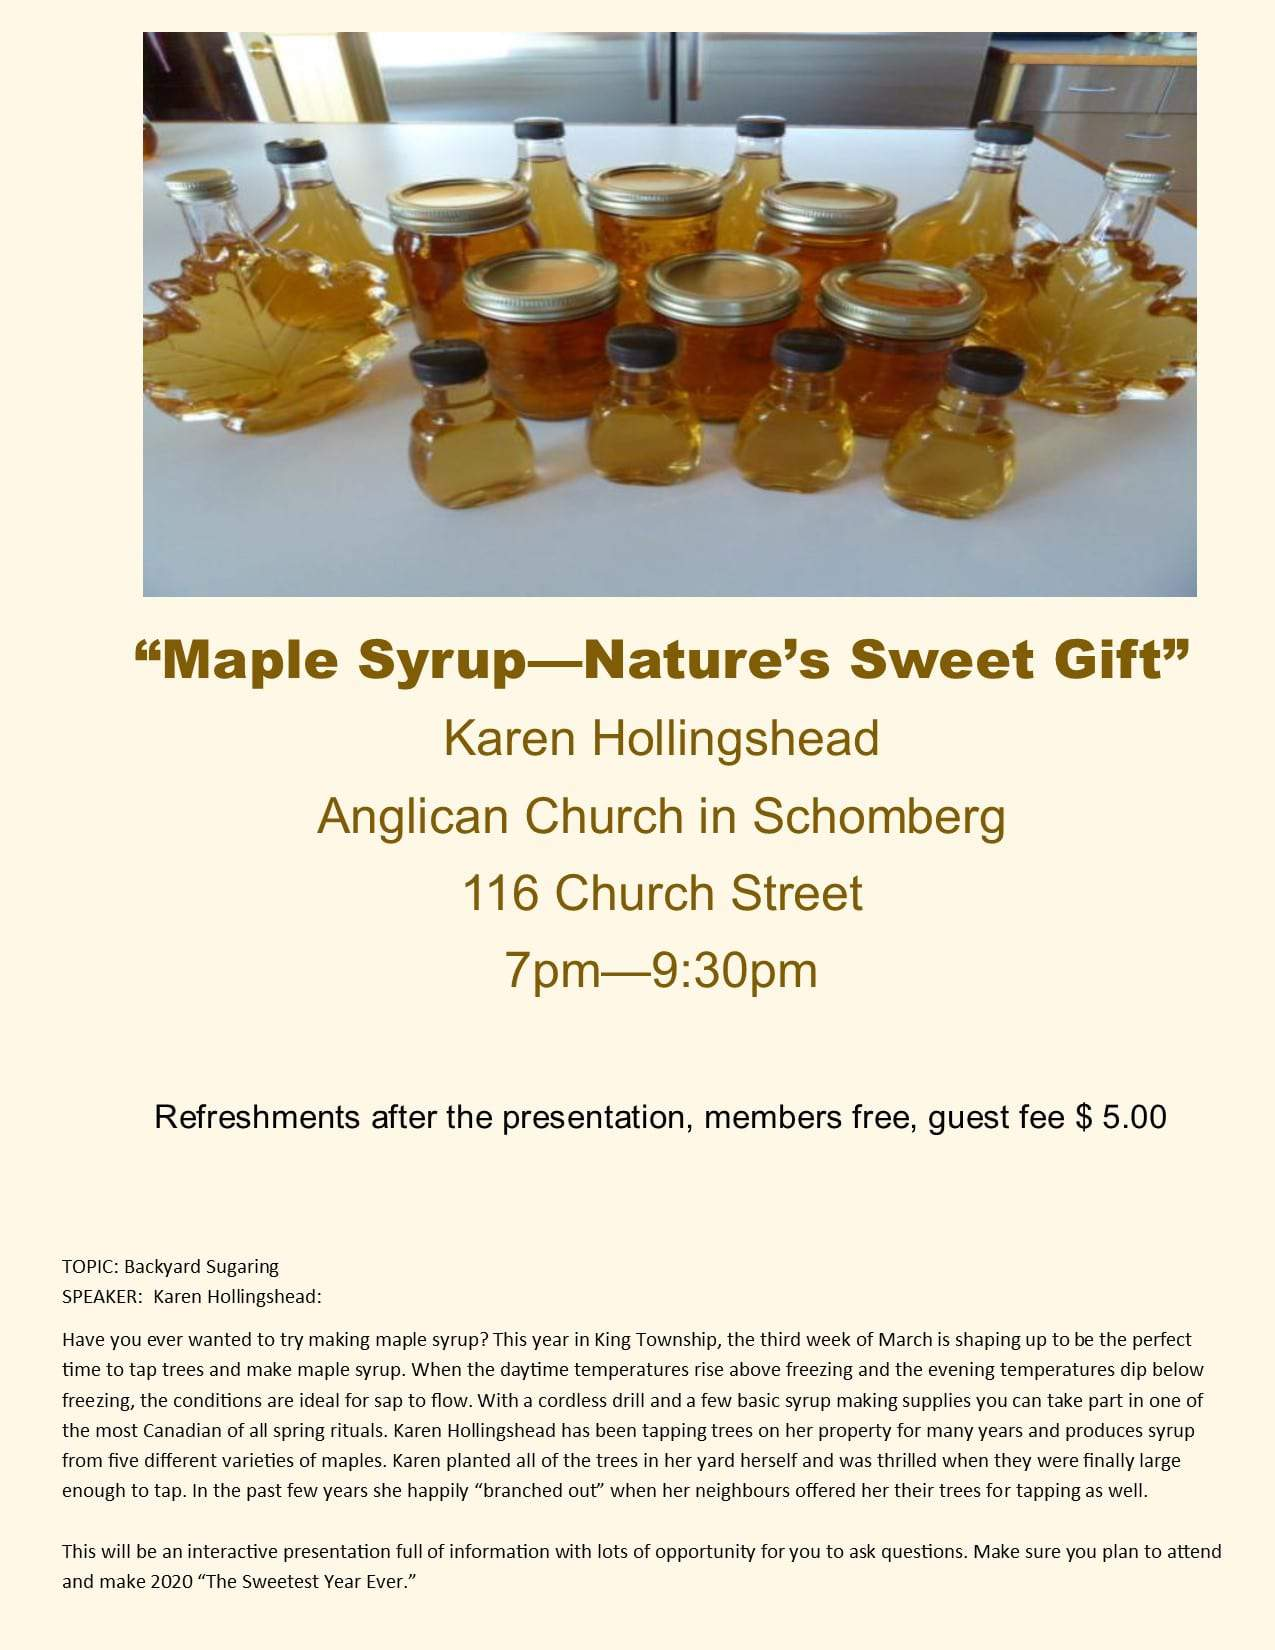 Maple Syrup, Nature's Sweet Gift